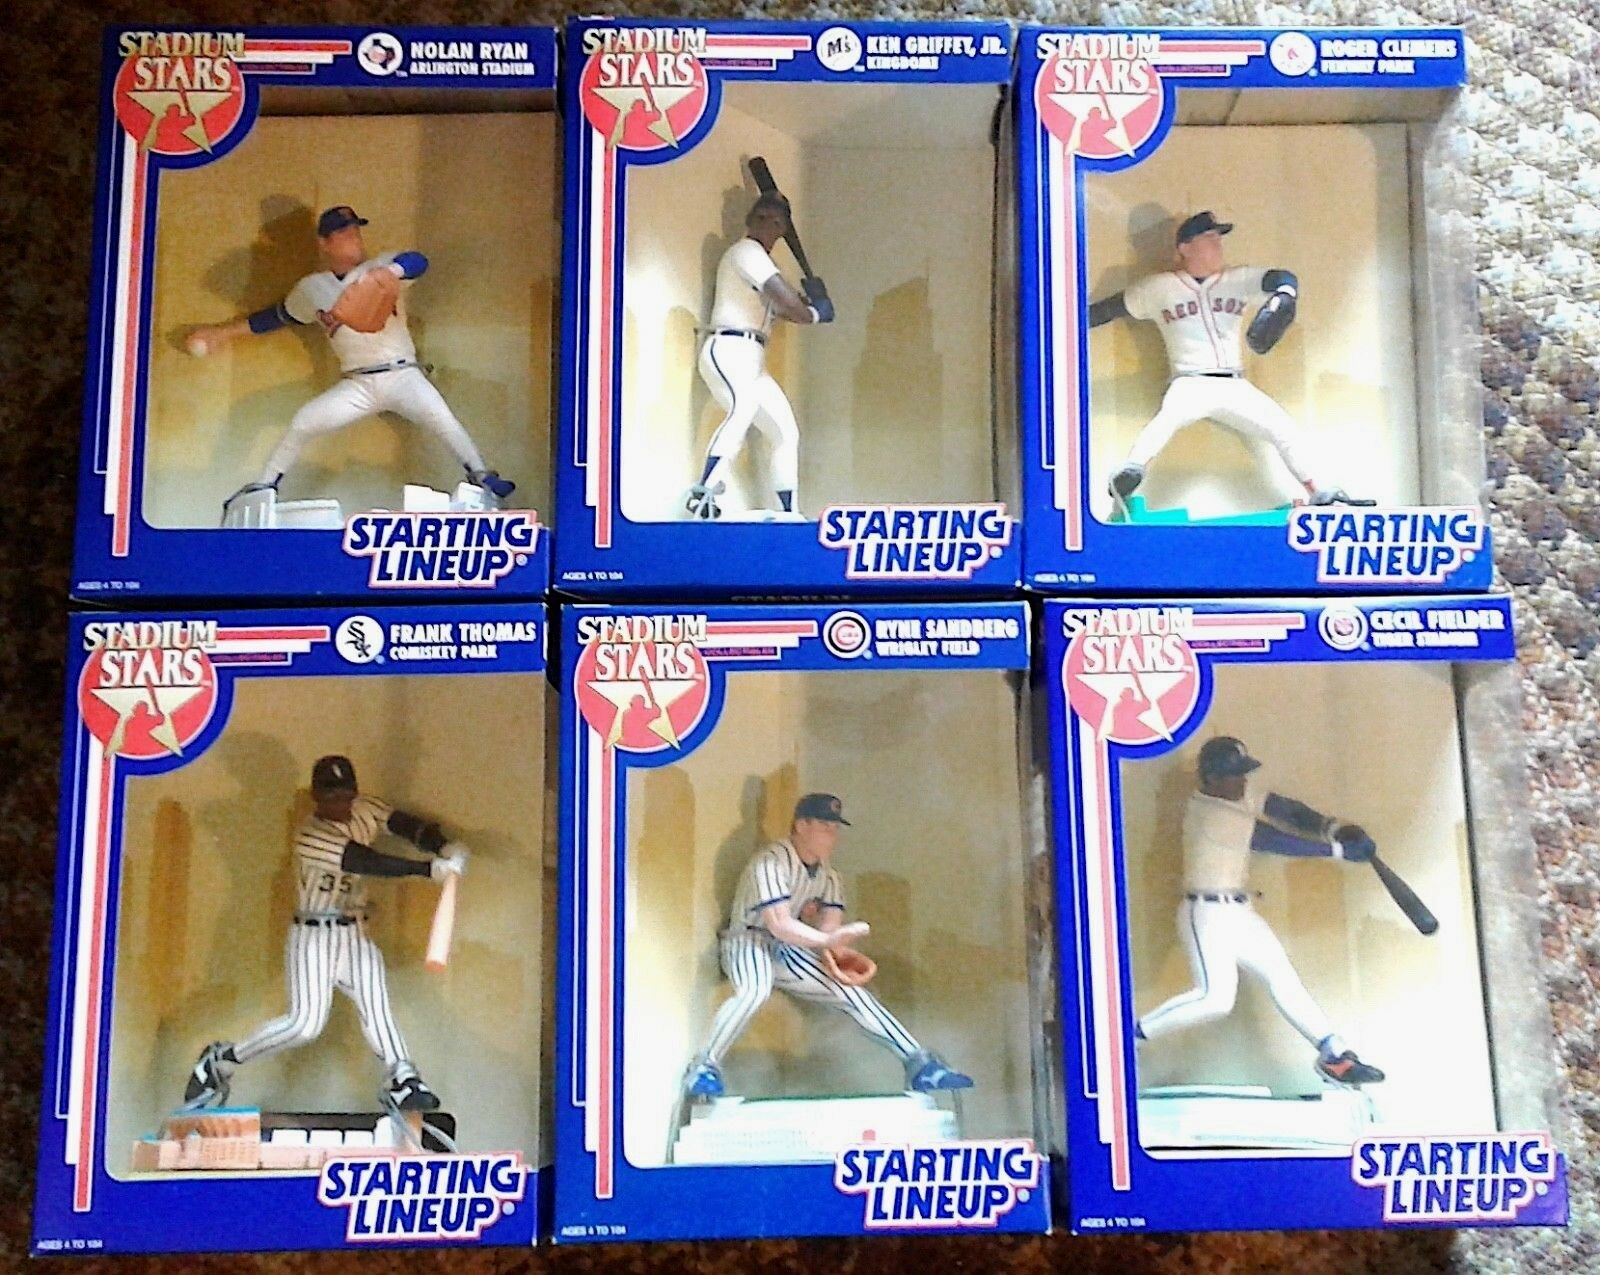 1992 STARTING-LINEUP NEW  STADIUM STARS  FULL SEALED LARGE SET of 6  MINT